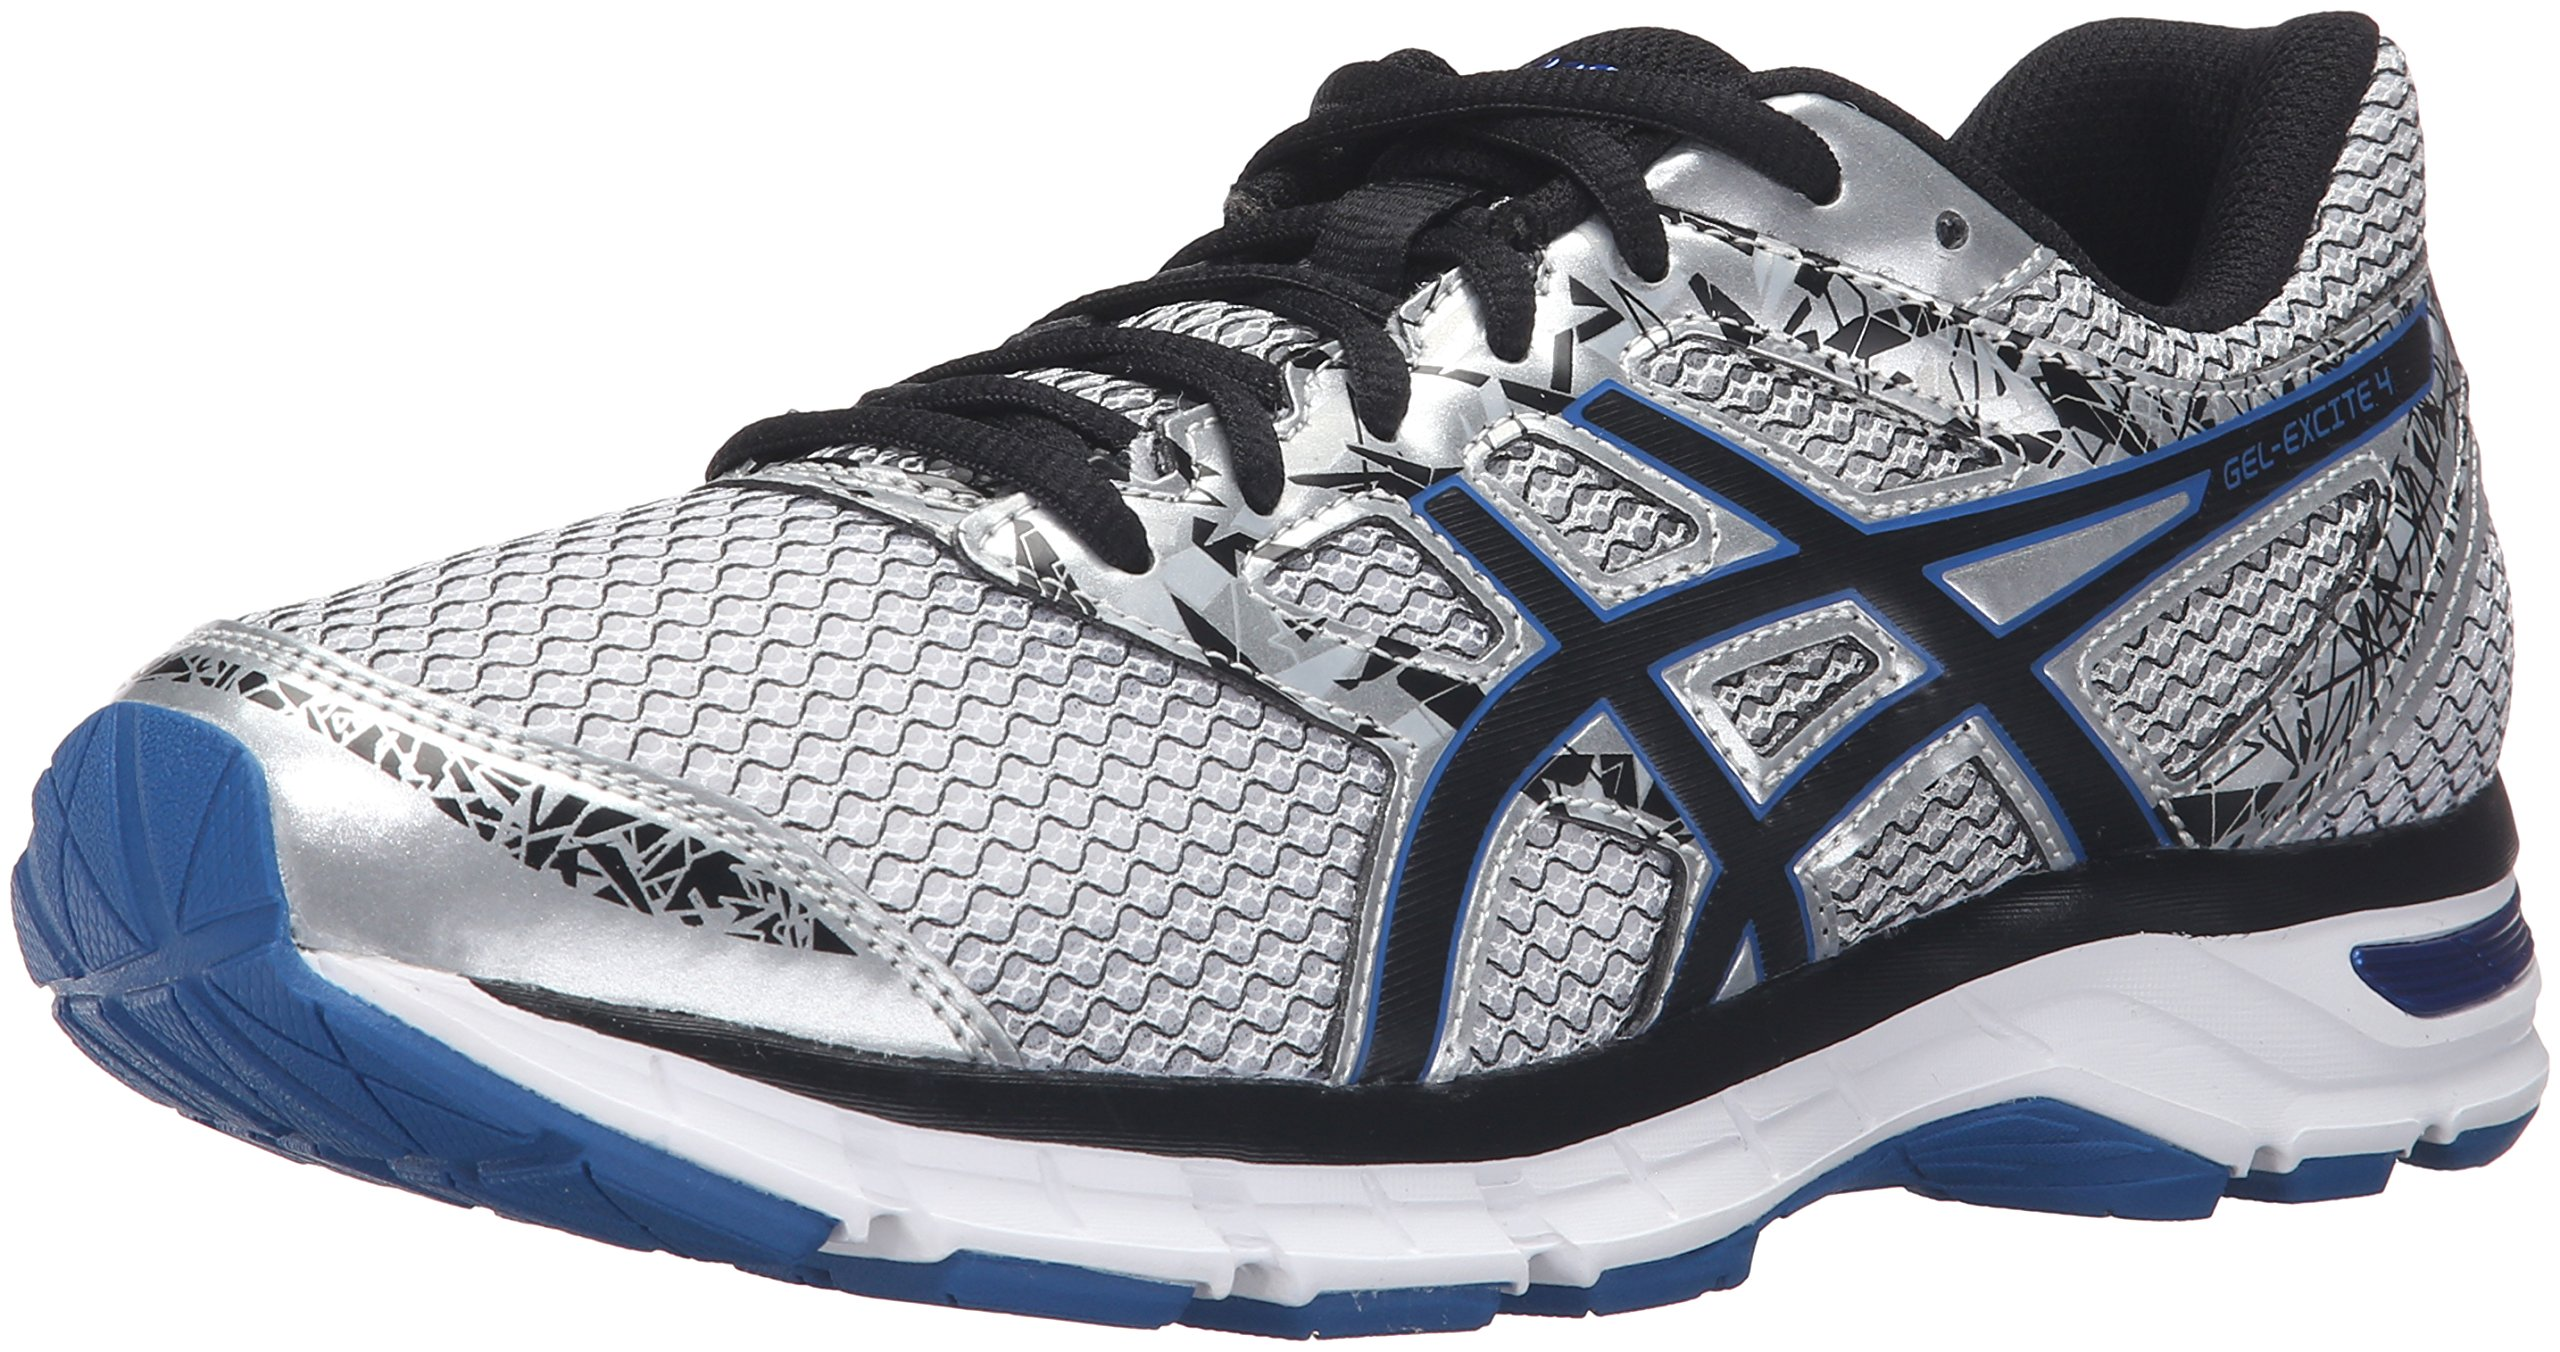 ASICS Men's Gel-Excite 4 Running Shoe, Silver/Black/Imperial, 12 M US by ASICS